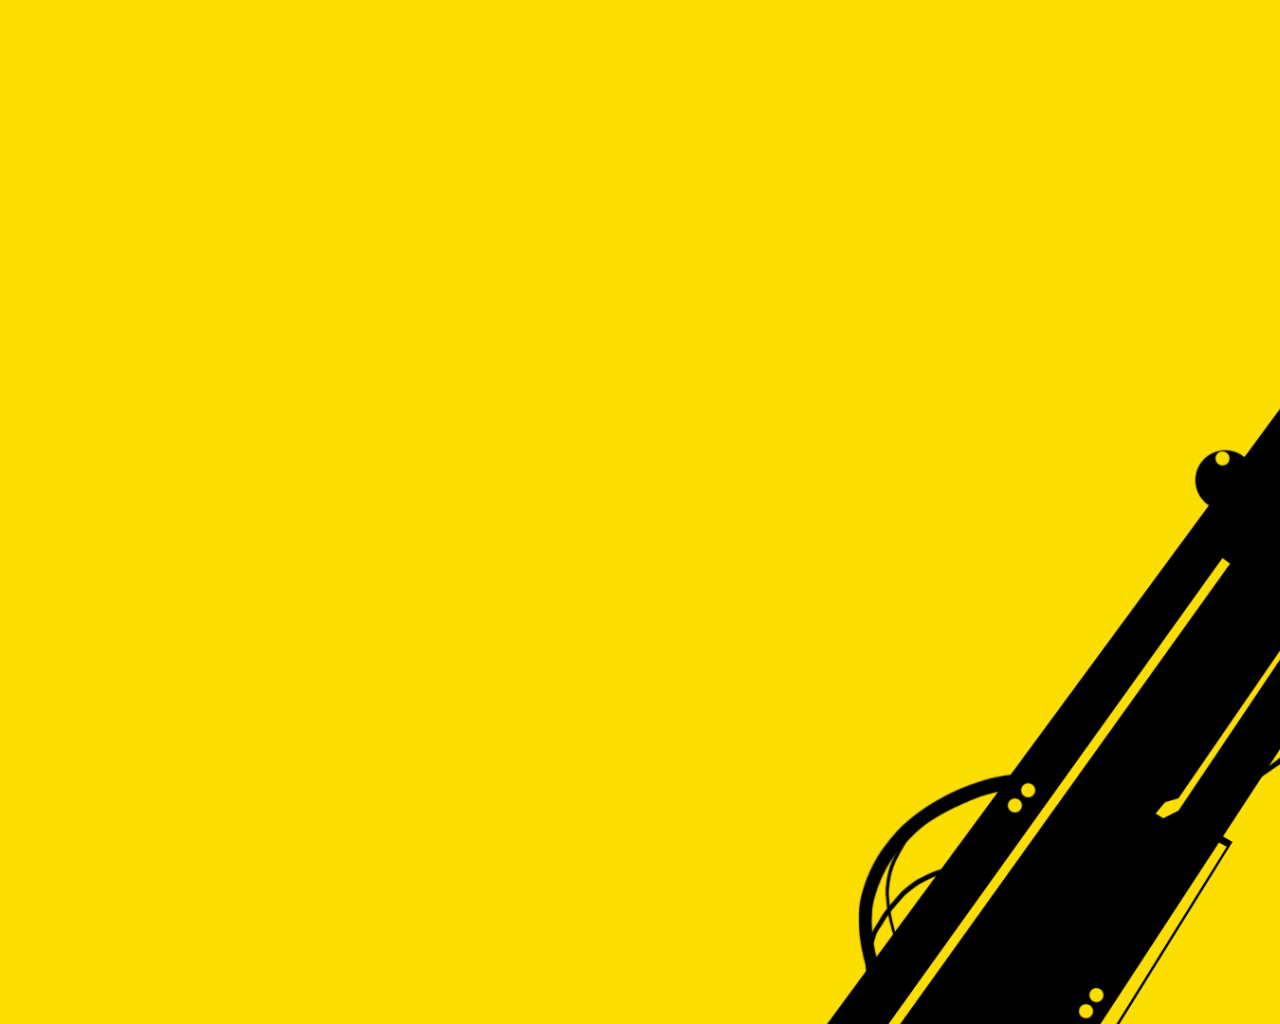 Free Download Black Gun On Yellow Background Wallpaper Pc Wallpaper With 1920x1080 1920x1080 For Your Desktop Mobile Tablet Explore 47 A Yellow Wallpaper The Yellow Wallpaper Symbolism Yellow Wallpaper